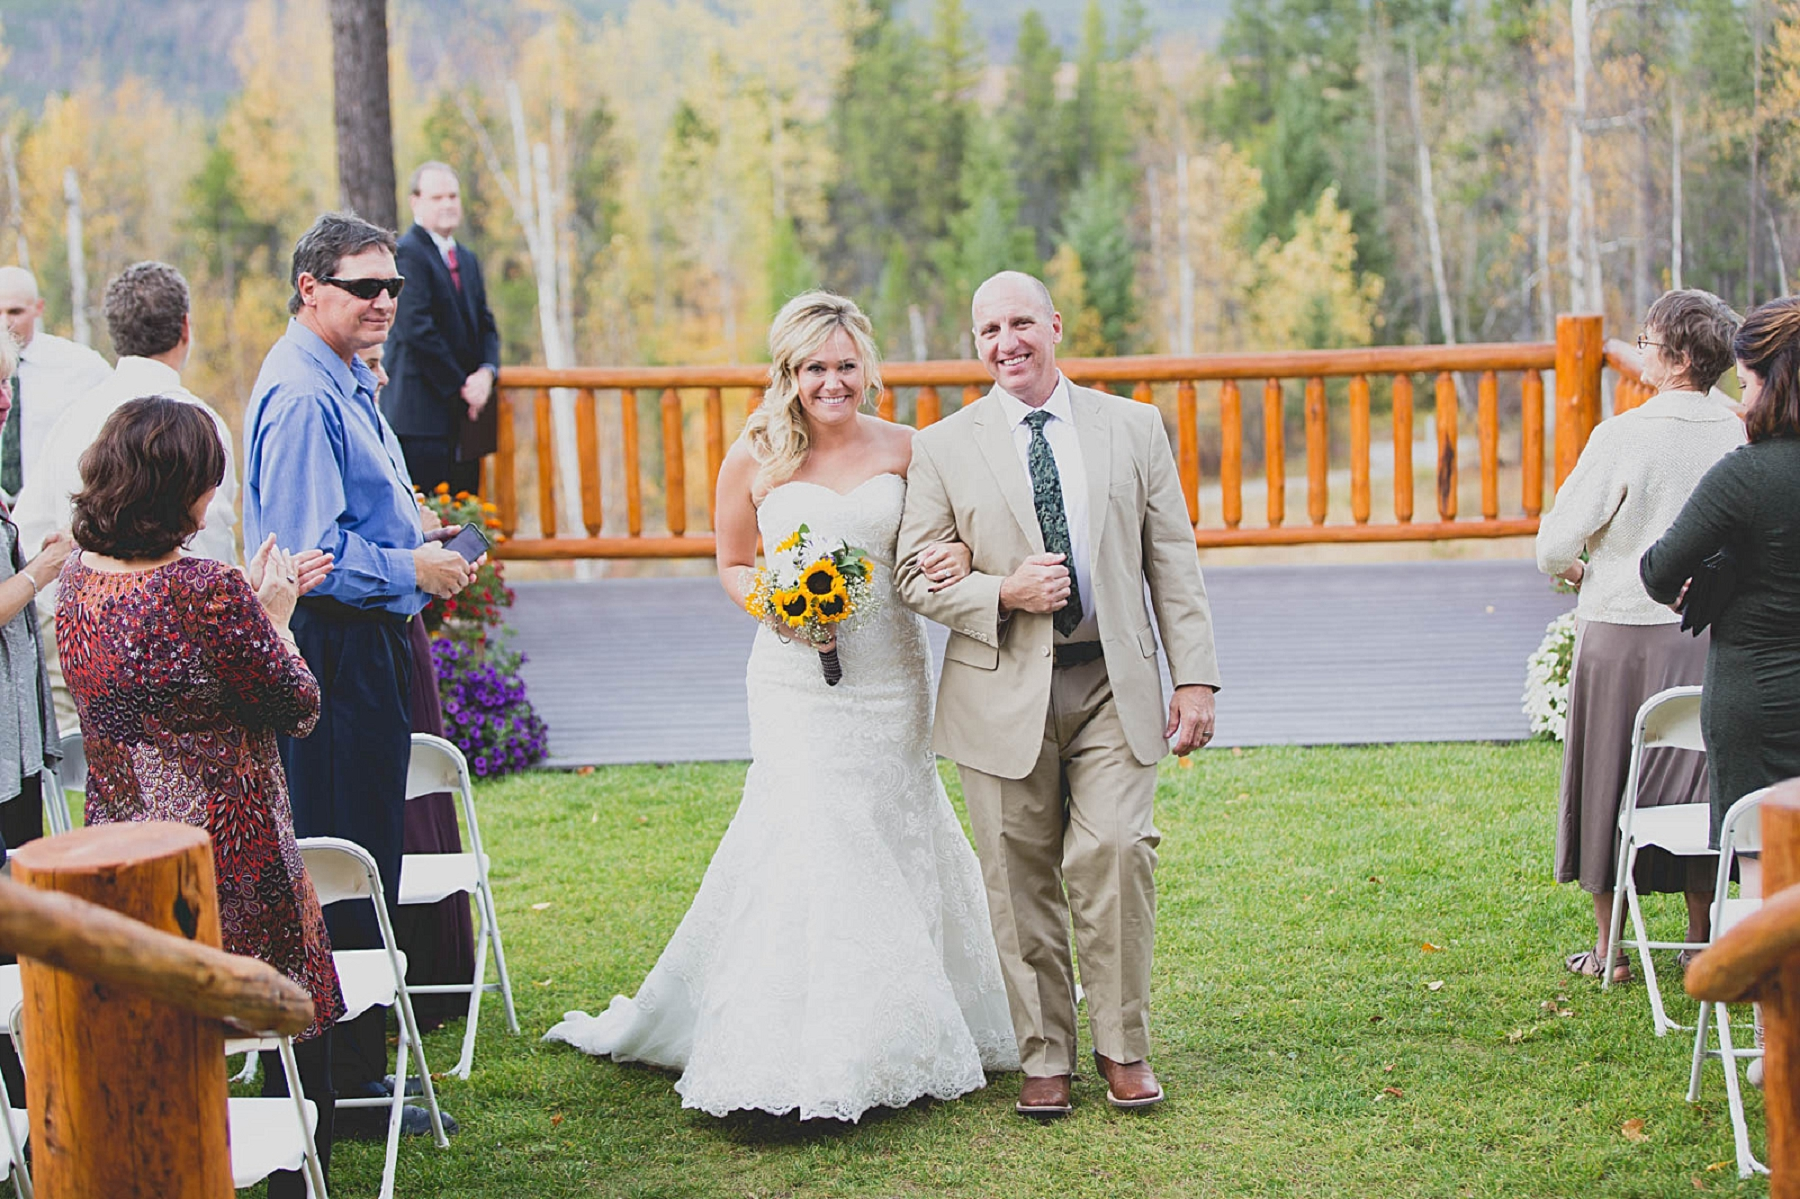 Jennifer_Mooney_photo_glacier_outdoor_center_wedding_montana_fall_elegant_rustic_romantic-91.jpg